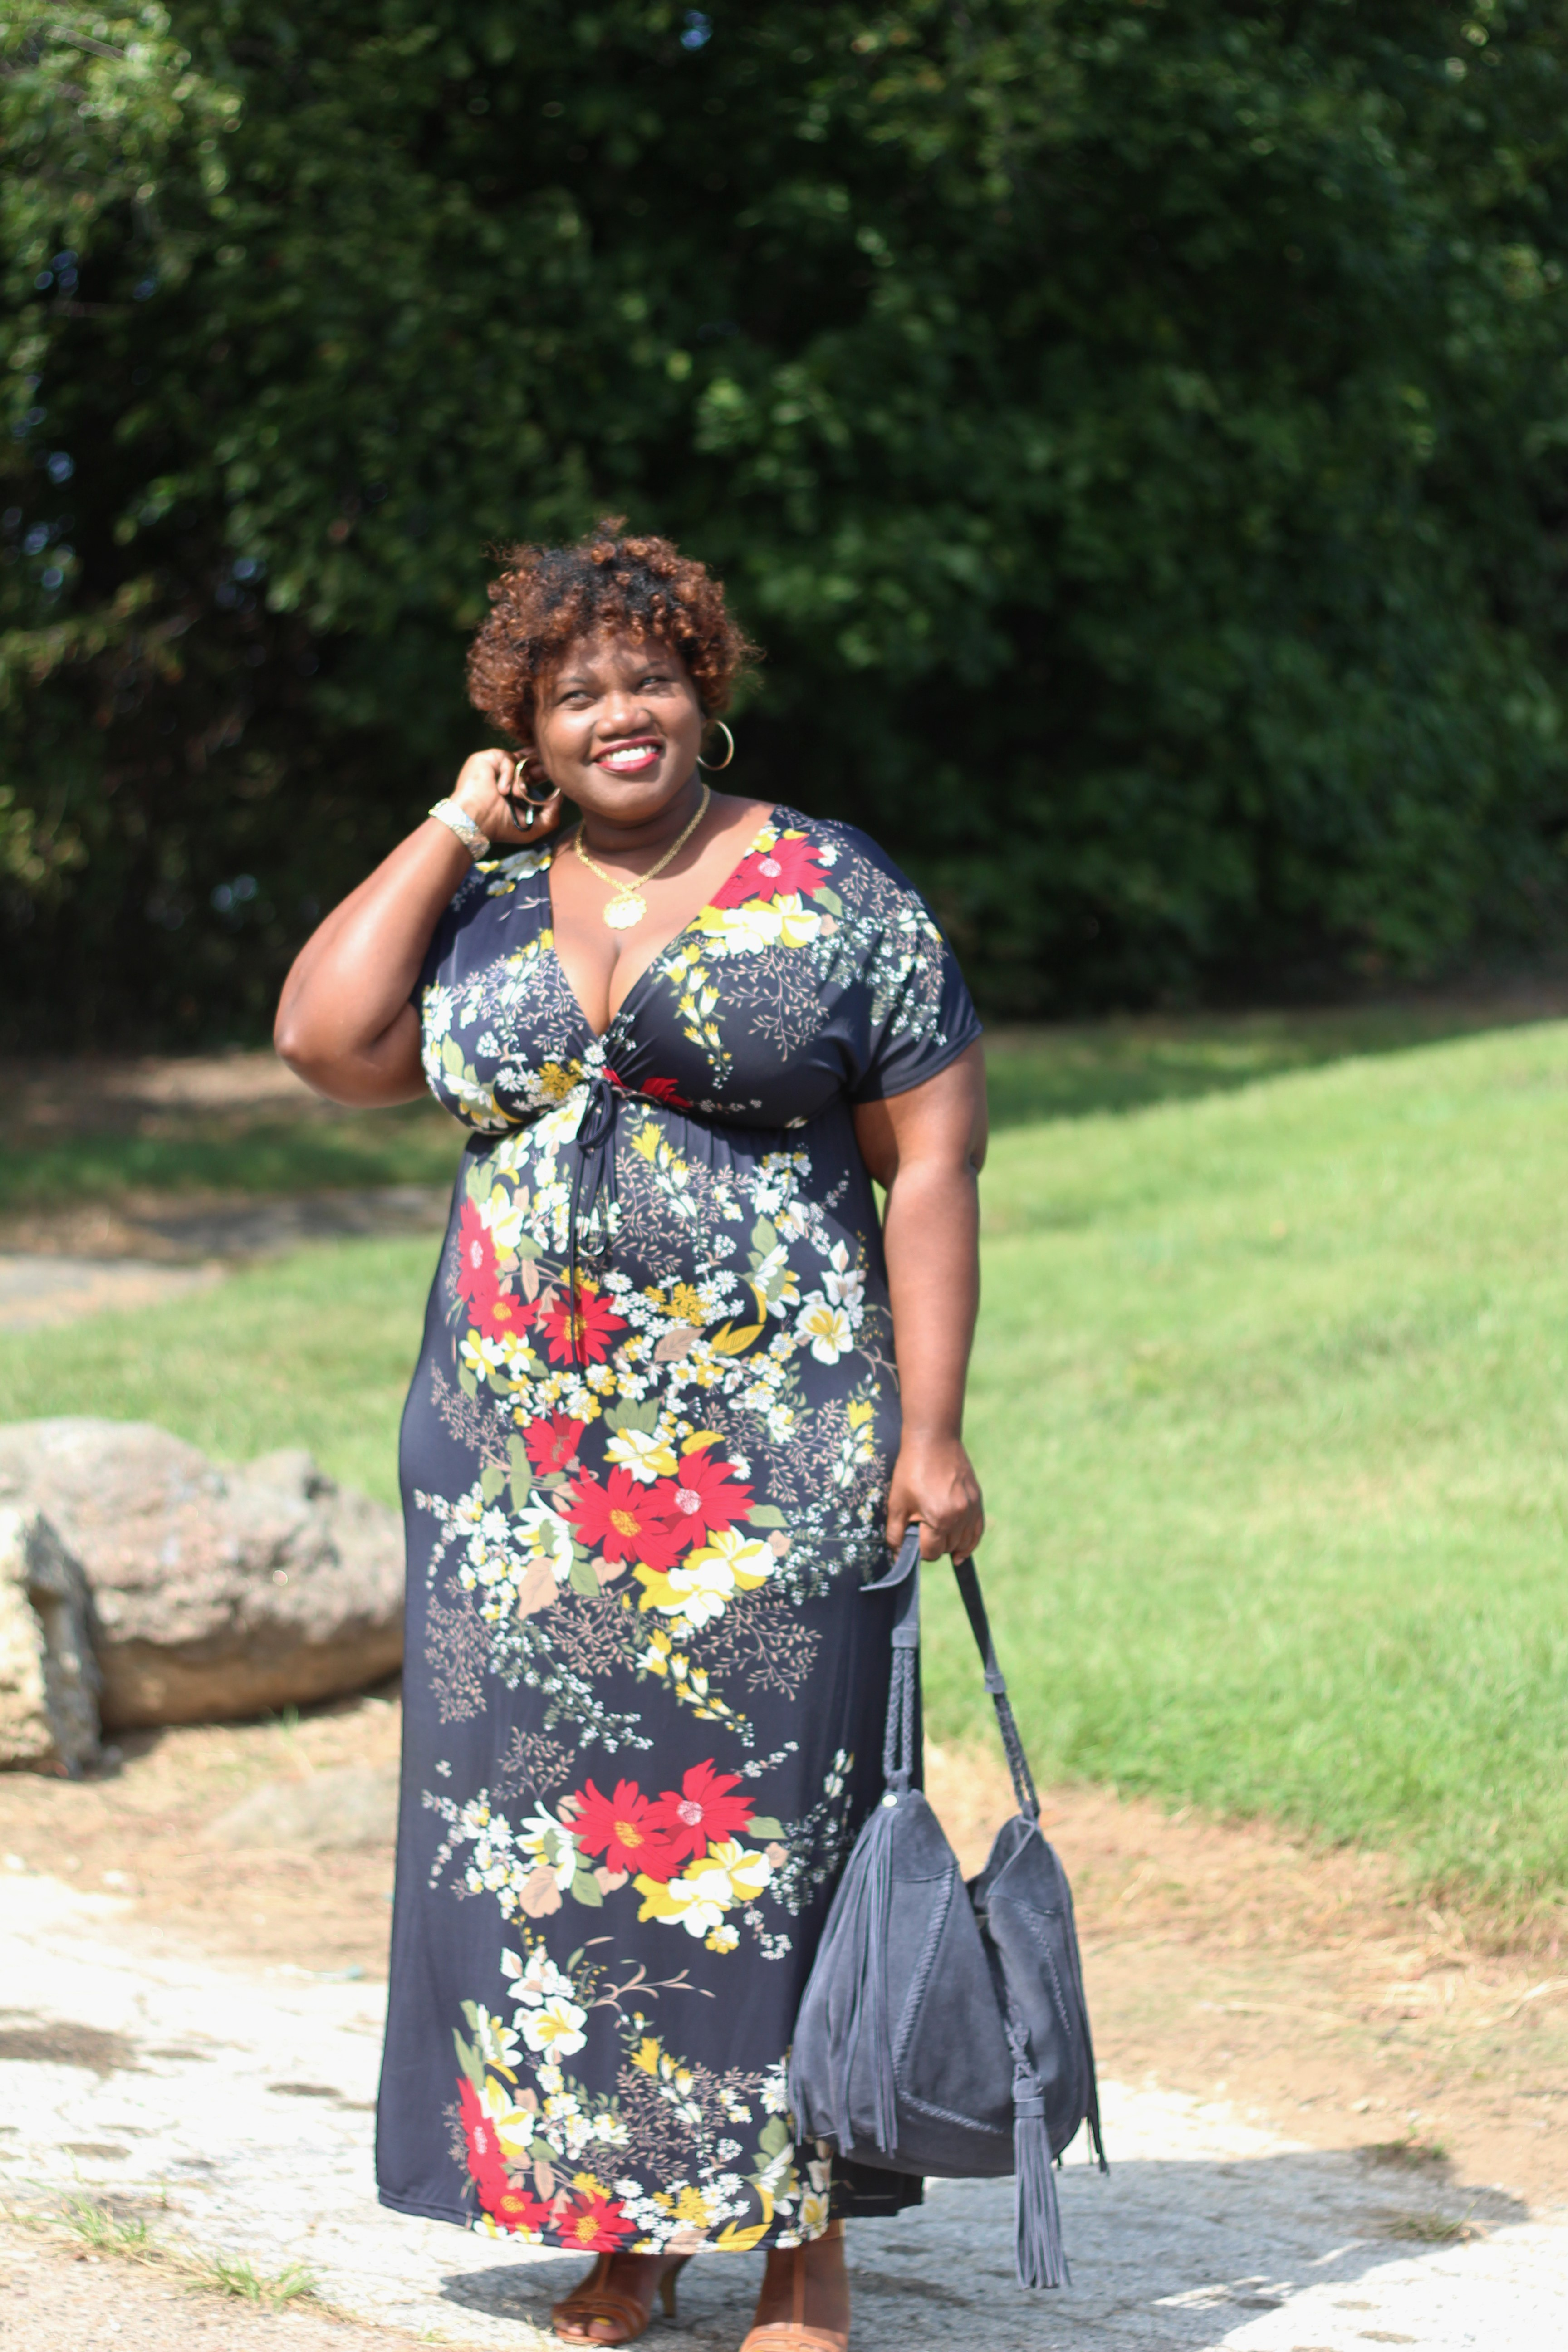 maxi dress, kimono sleeve maxi dress, printed maxi dress, plus size maxi dresses, plus size maxi, zara, suede bags, tassel bags, hobo bags, plus size fashion, plus size blogger, plus size bloggers, curvy, curvy women, curvy girls, curvy blogs, curvy bloggers, bloggers who are curvy, over 40 bloggers, over 40 blogs, curvy fashion blogs, curvy fashion bloggers, floral print